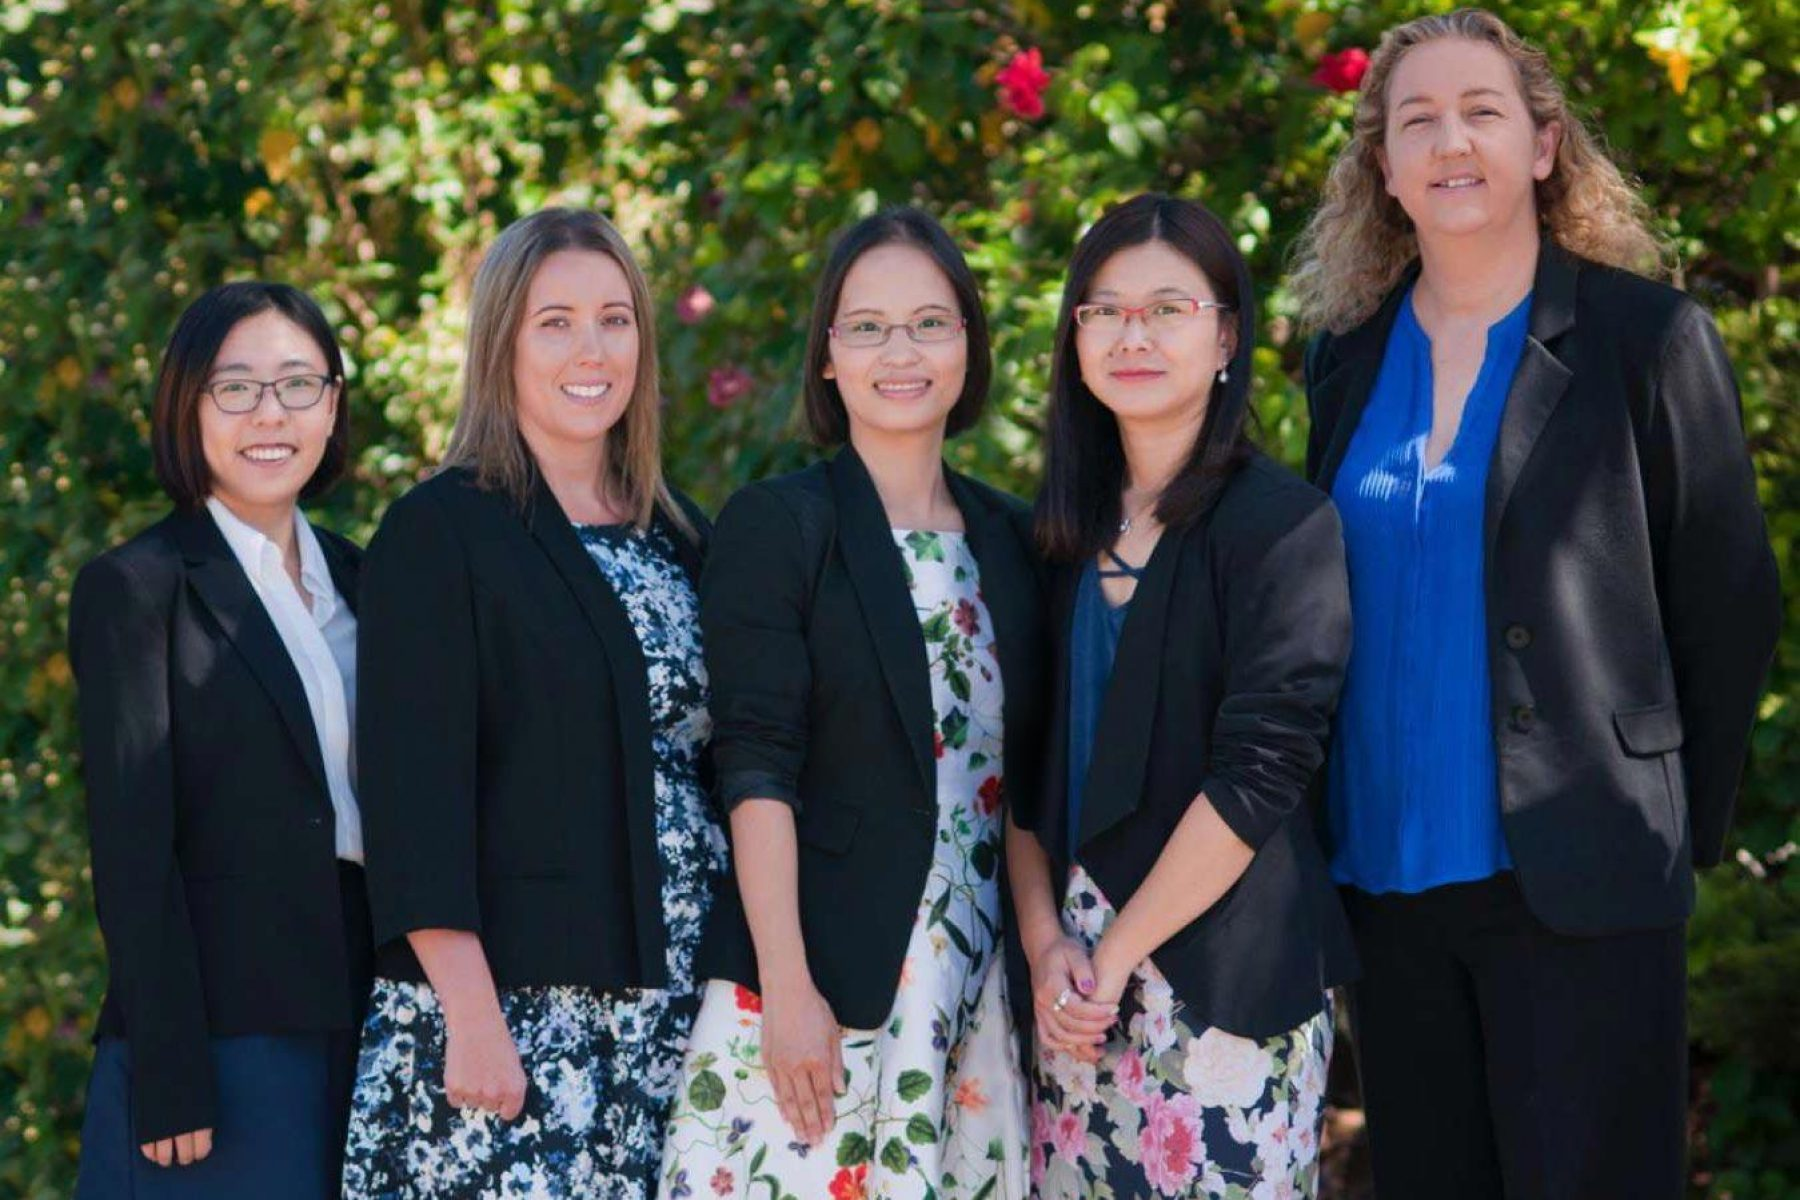 JSA Accounting Adelaide - Tax and Chartered Accountants team